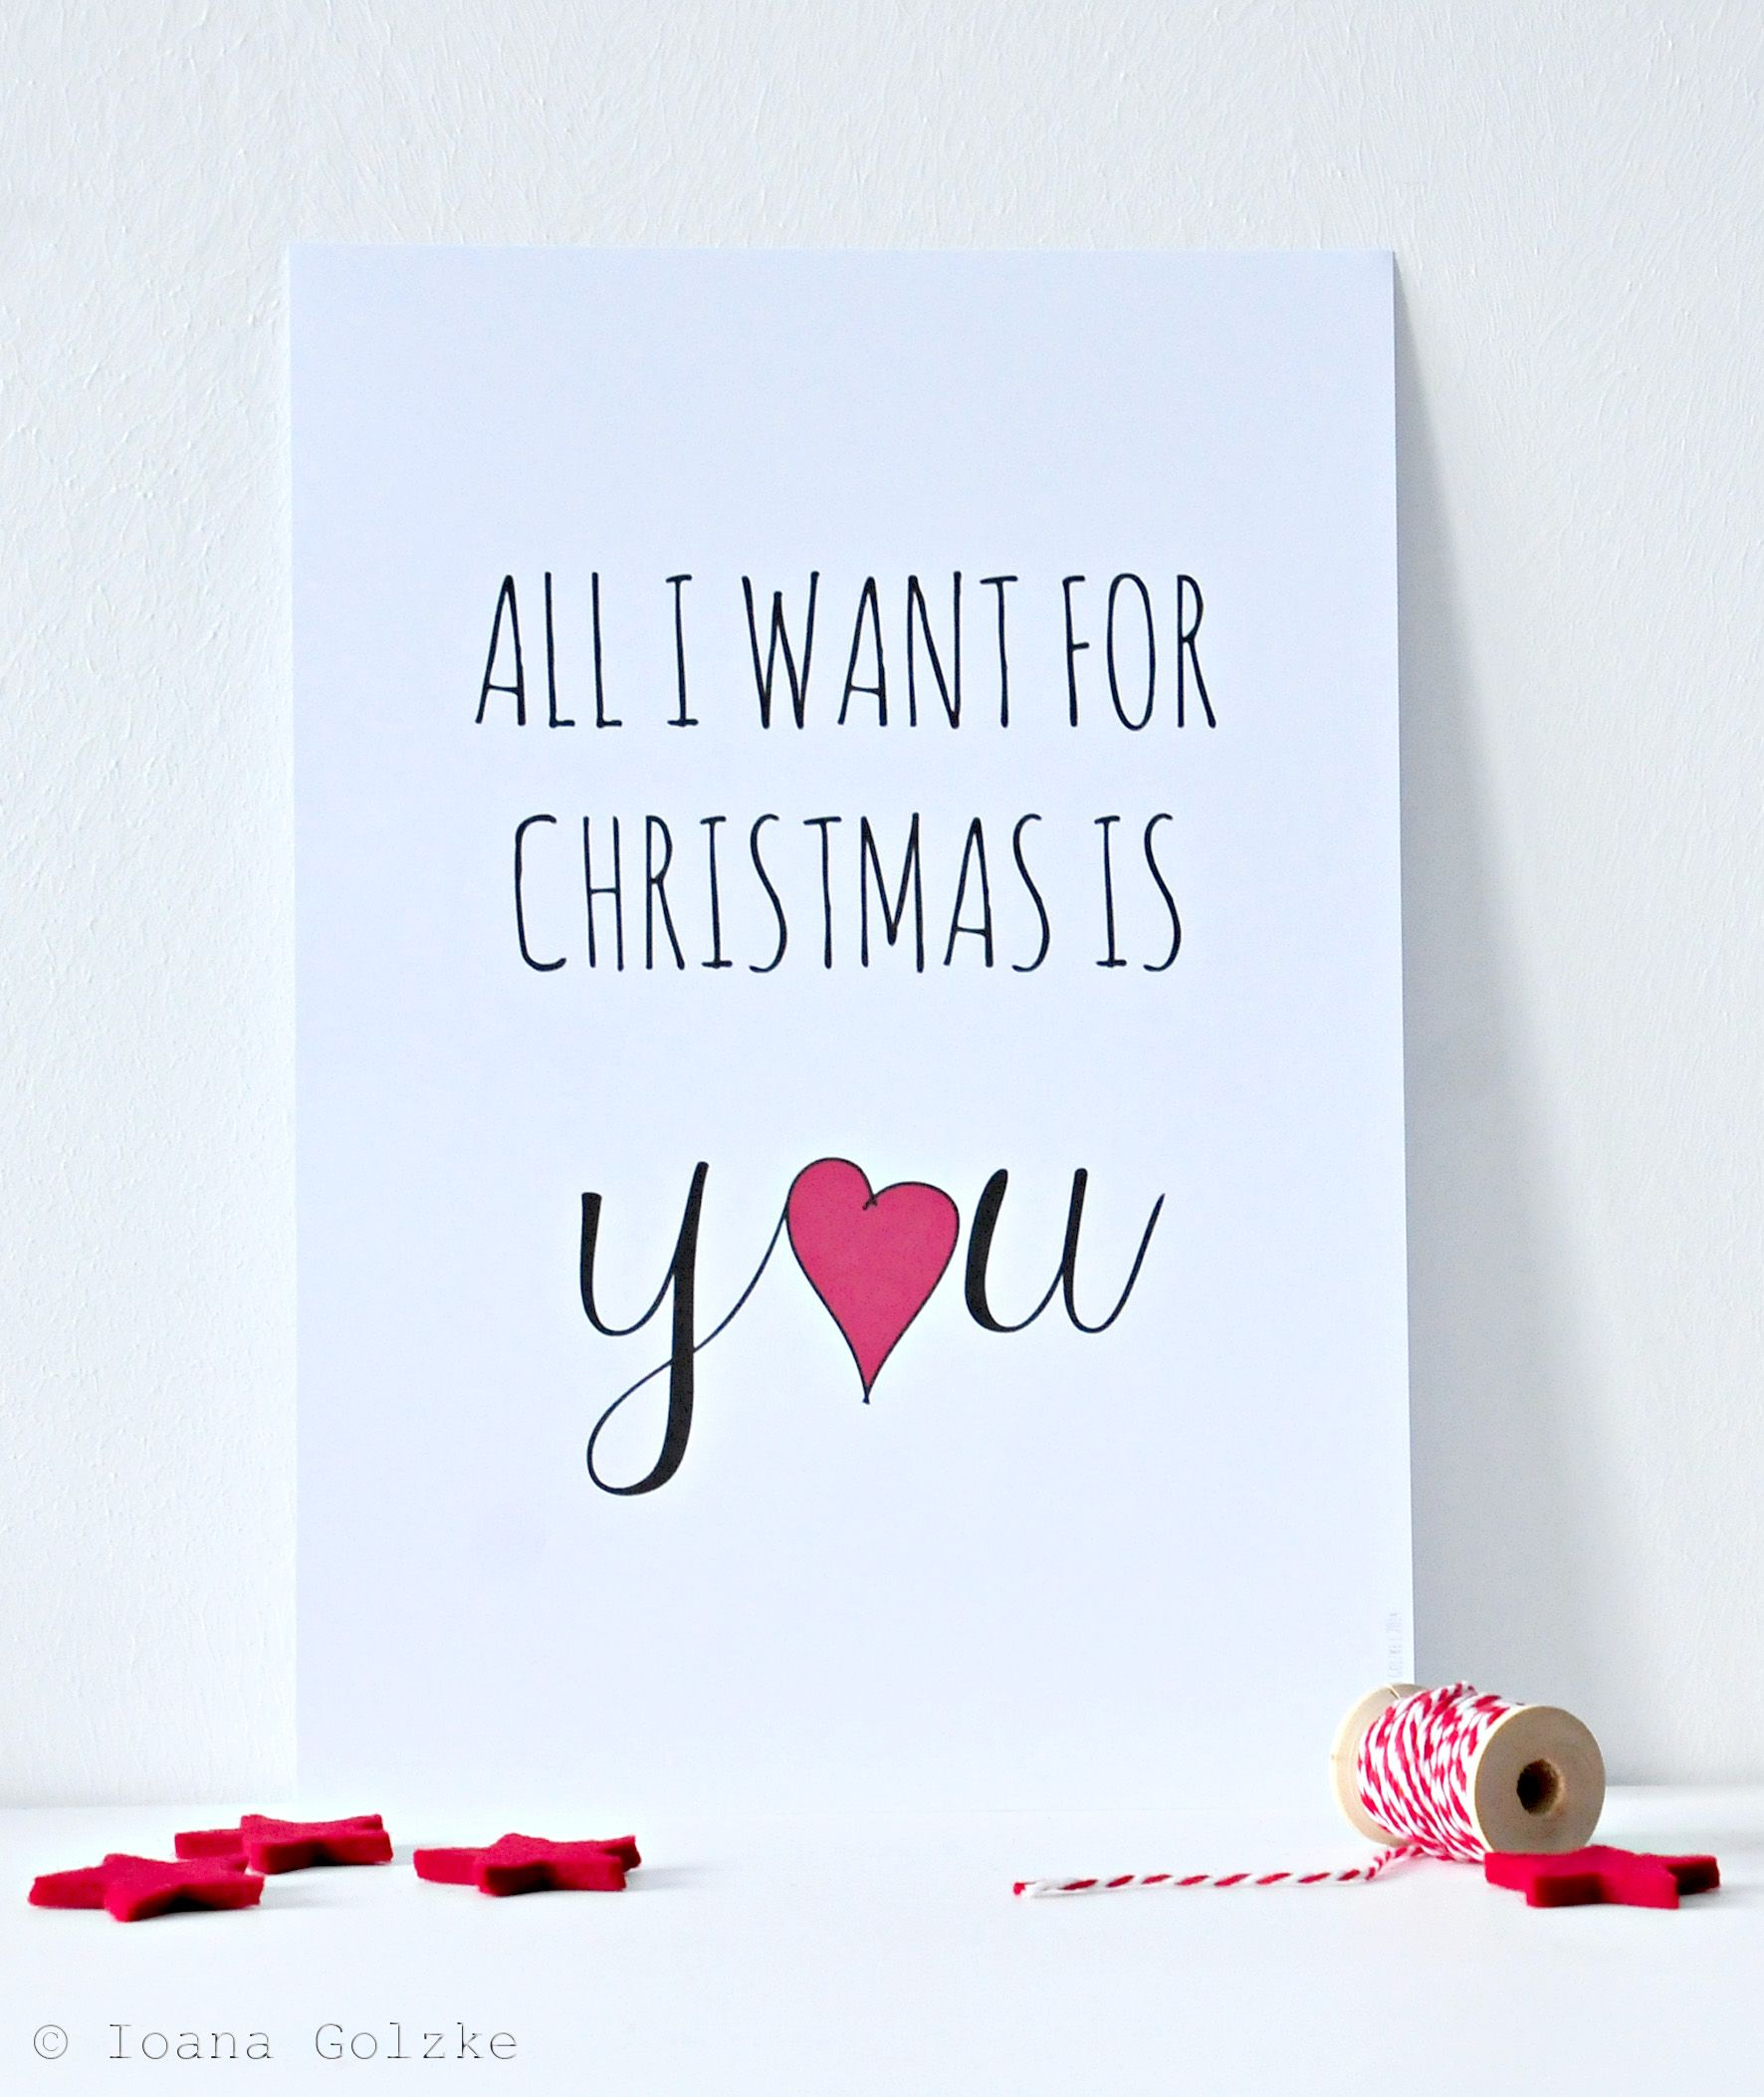 Geschenk Weihnachten All I Want For Christmas Is You Poster Merry Christmas My Love Xmas Quotes Christmas Quotes